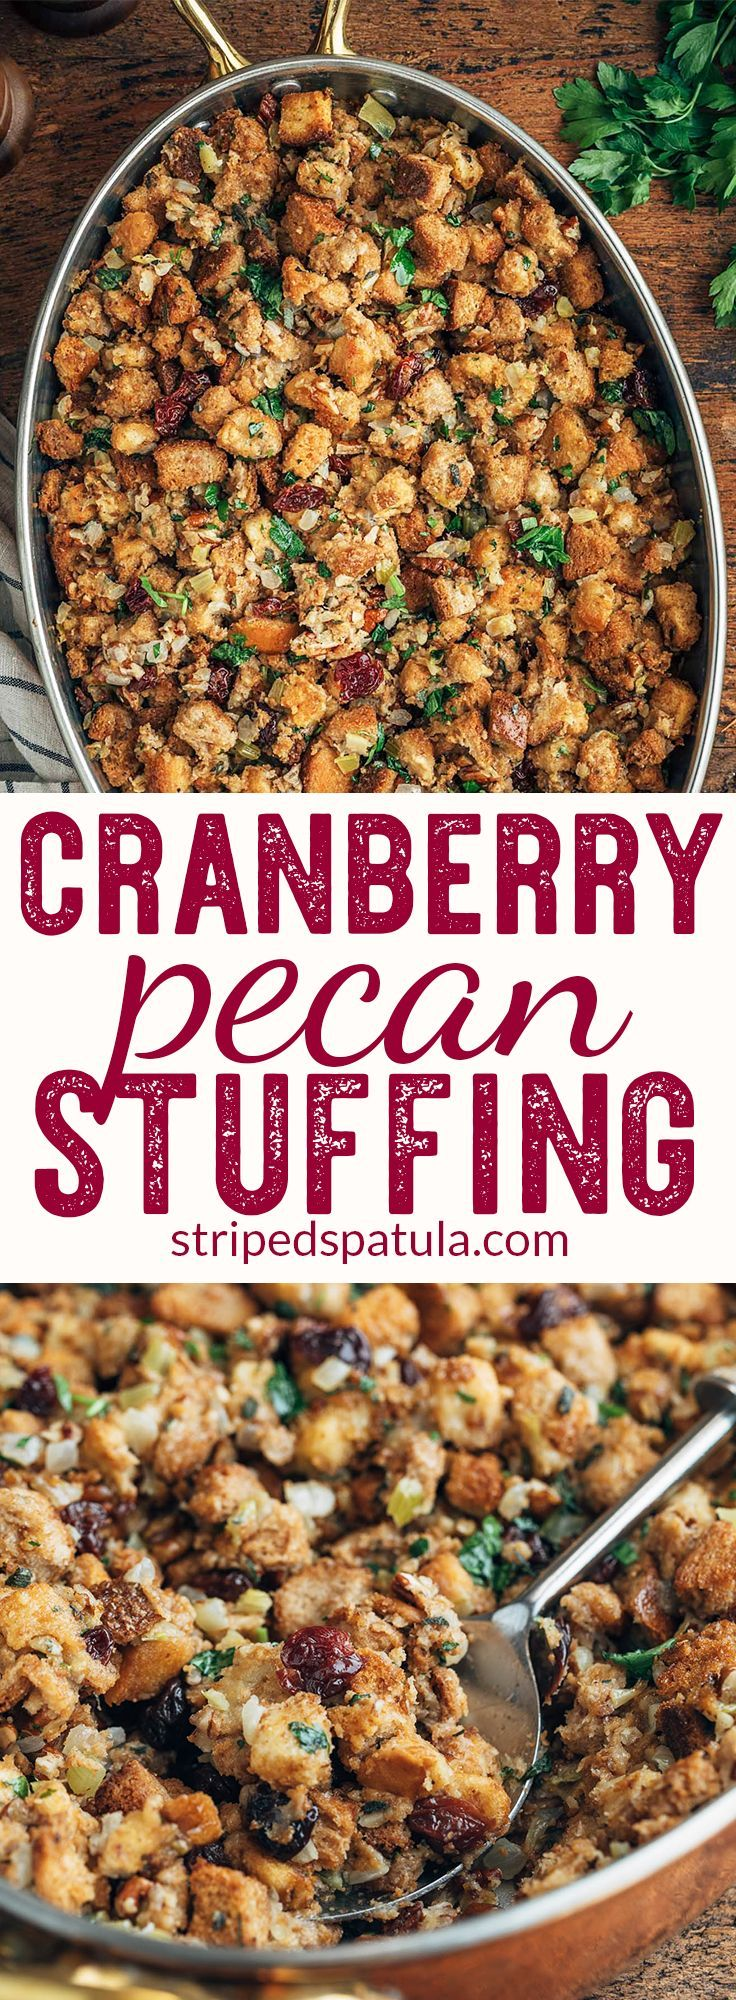 Cranberry Pecan Stuffing | Stuffing Recipes for Thanksgiving | Dressing Recipes  #thanksgivingideas #thanksgivingdinner #thanksgivingrecipes